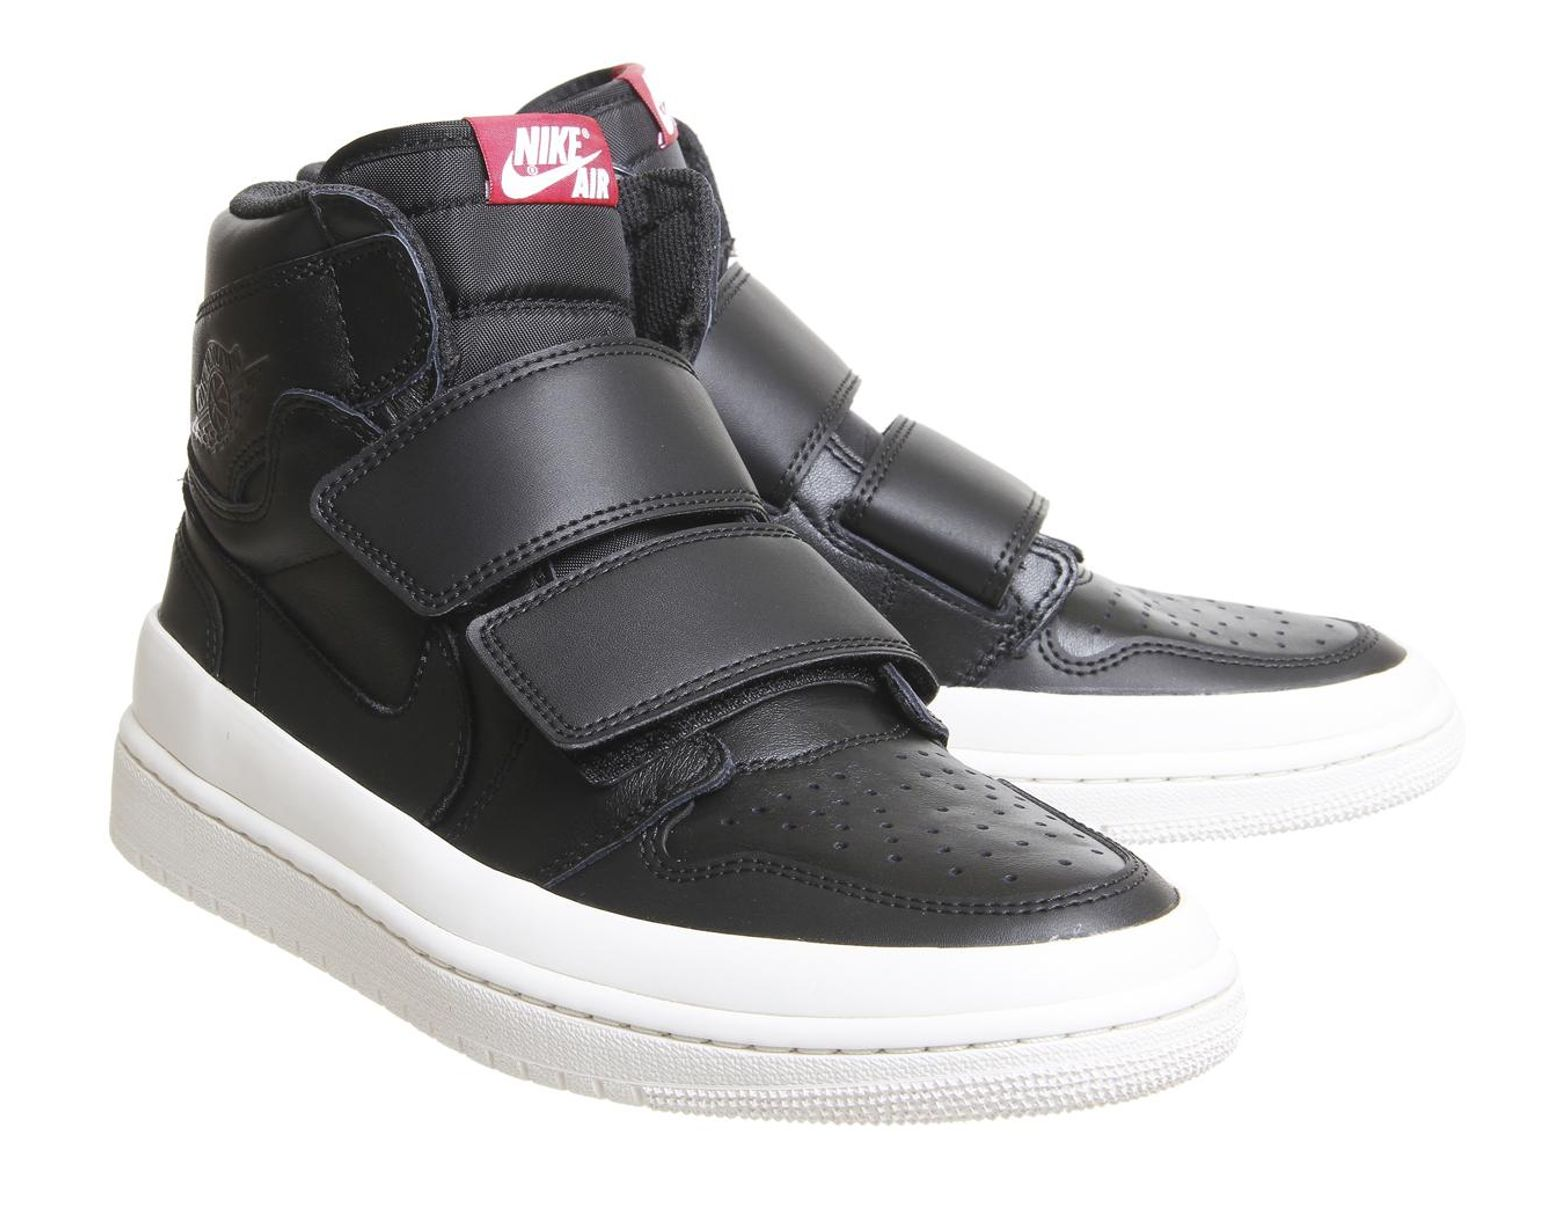 competitive price dff44 e2faf Nike Air 1 Hi Double Strap in Black for Men - Lyst